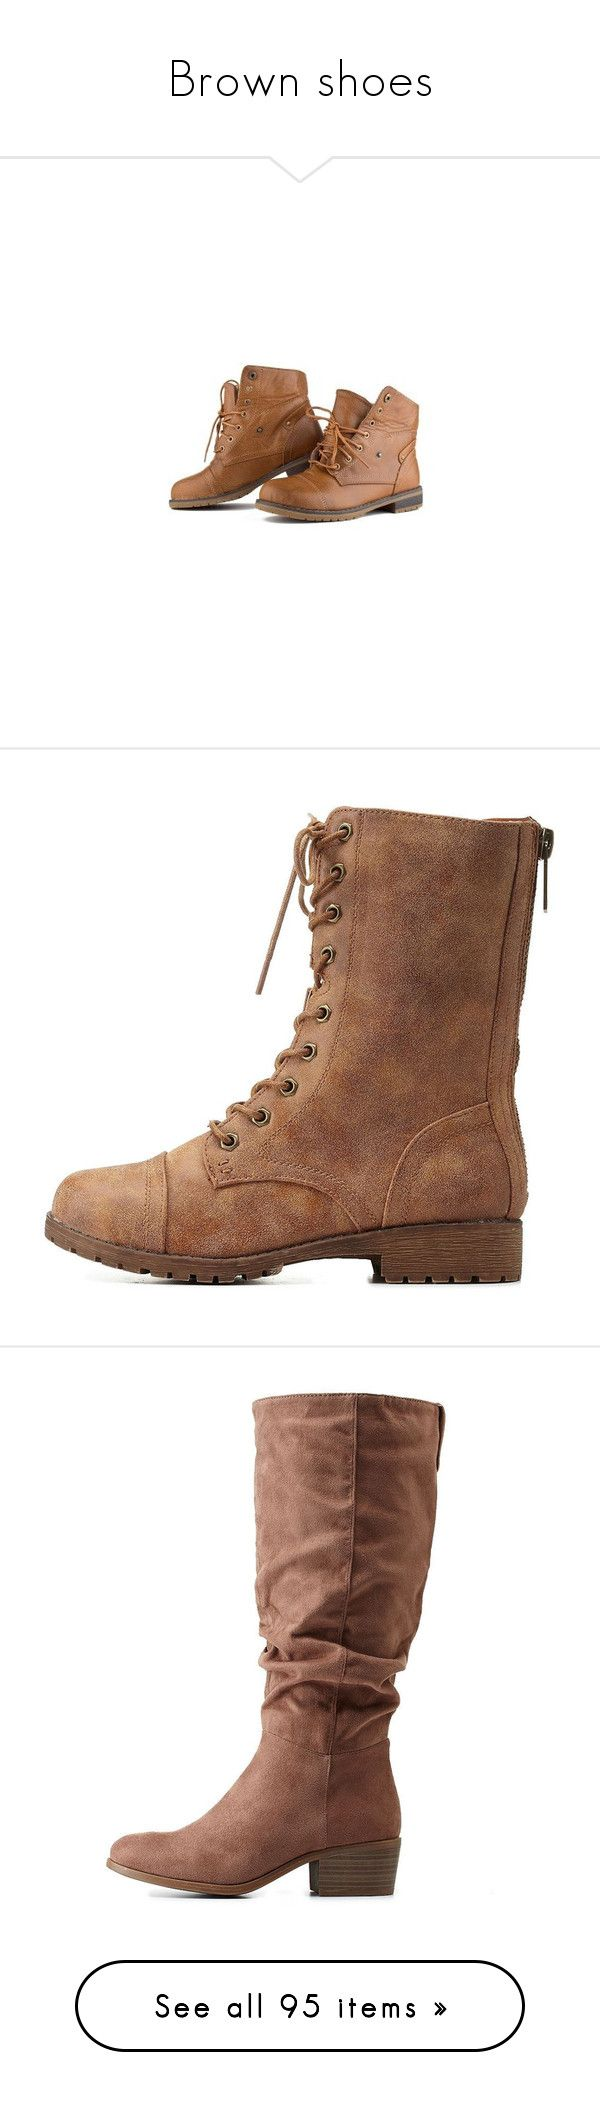 """""""Brown shoes"""" by violetrose74 ❤ liked on Polyvore featuring shoes, boots, ankle booties, lace up boots, lace up combat boots, lace up booties, combat booties, bootie boots, chestnut and back zipper boots"""